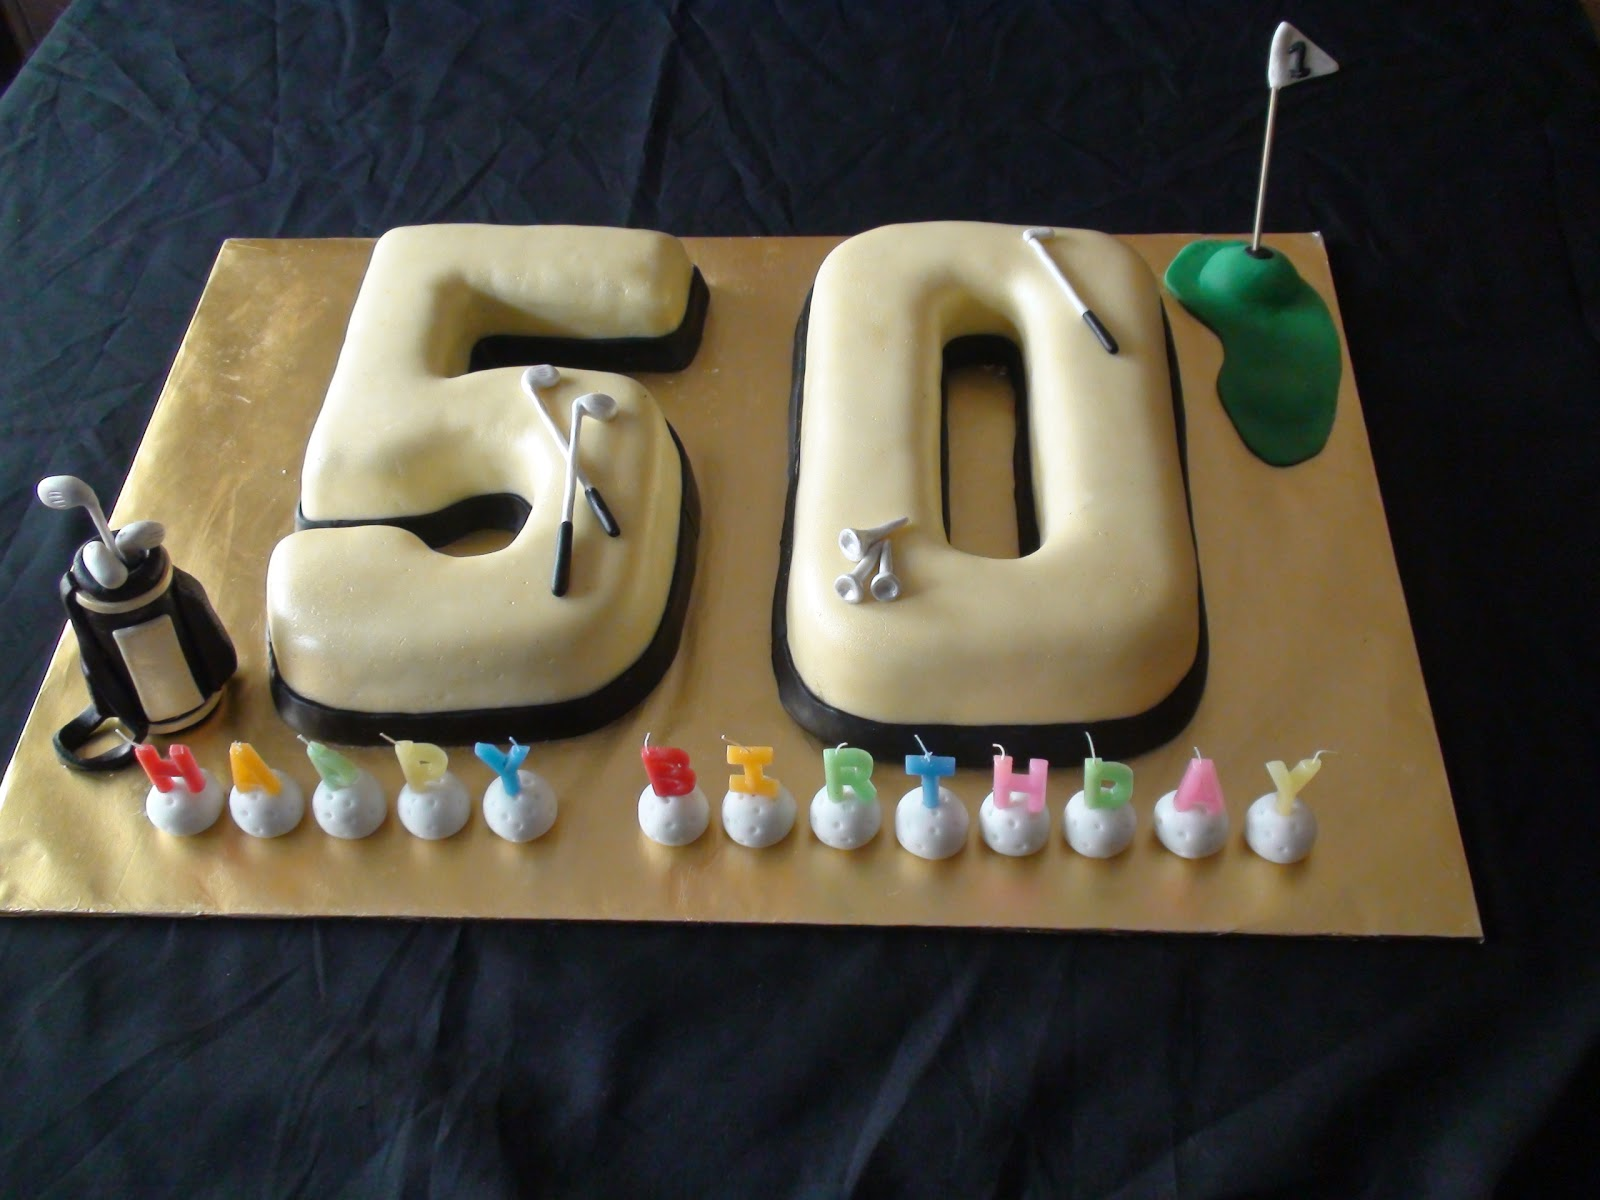 50th Birthday Cake Pictures For Her : Fazy s Kitchen: Black and Gold 50th Birthday Cake